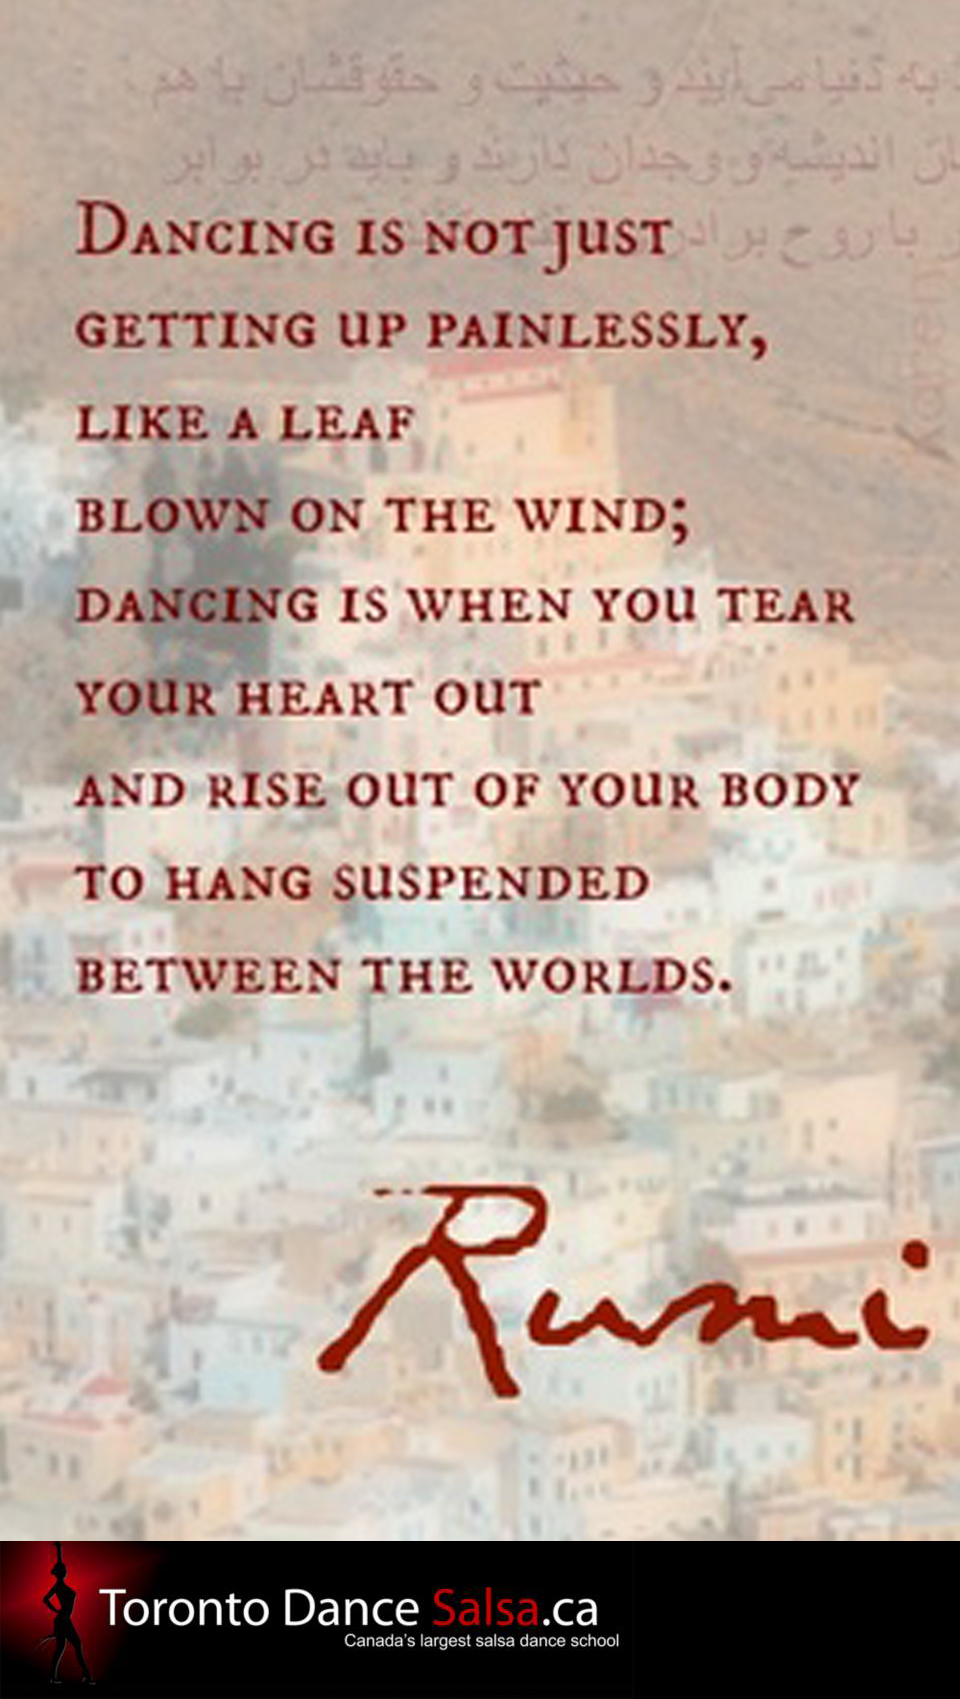 Dancing is not just getting up painlessly, like a leaf blown on the wind…